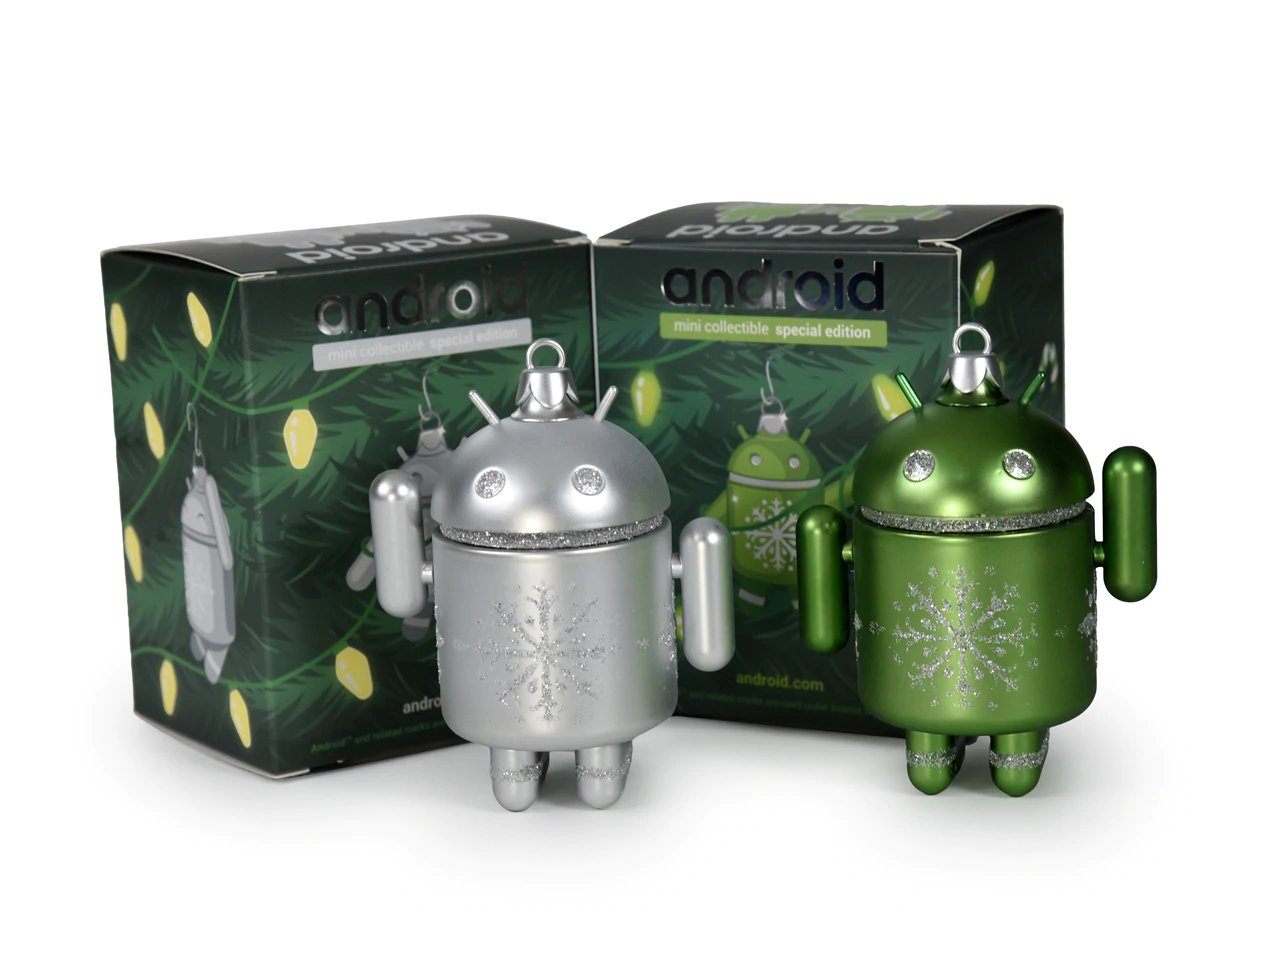 Dead Zebra's Android mini holiday ornaments go on sale December 12 at 11AM ET